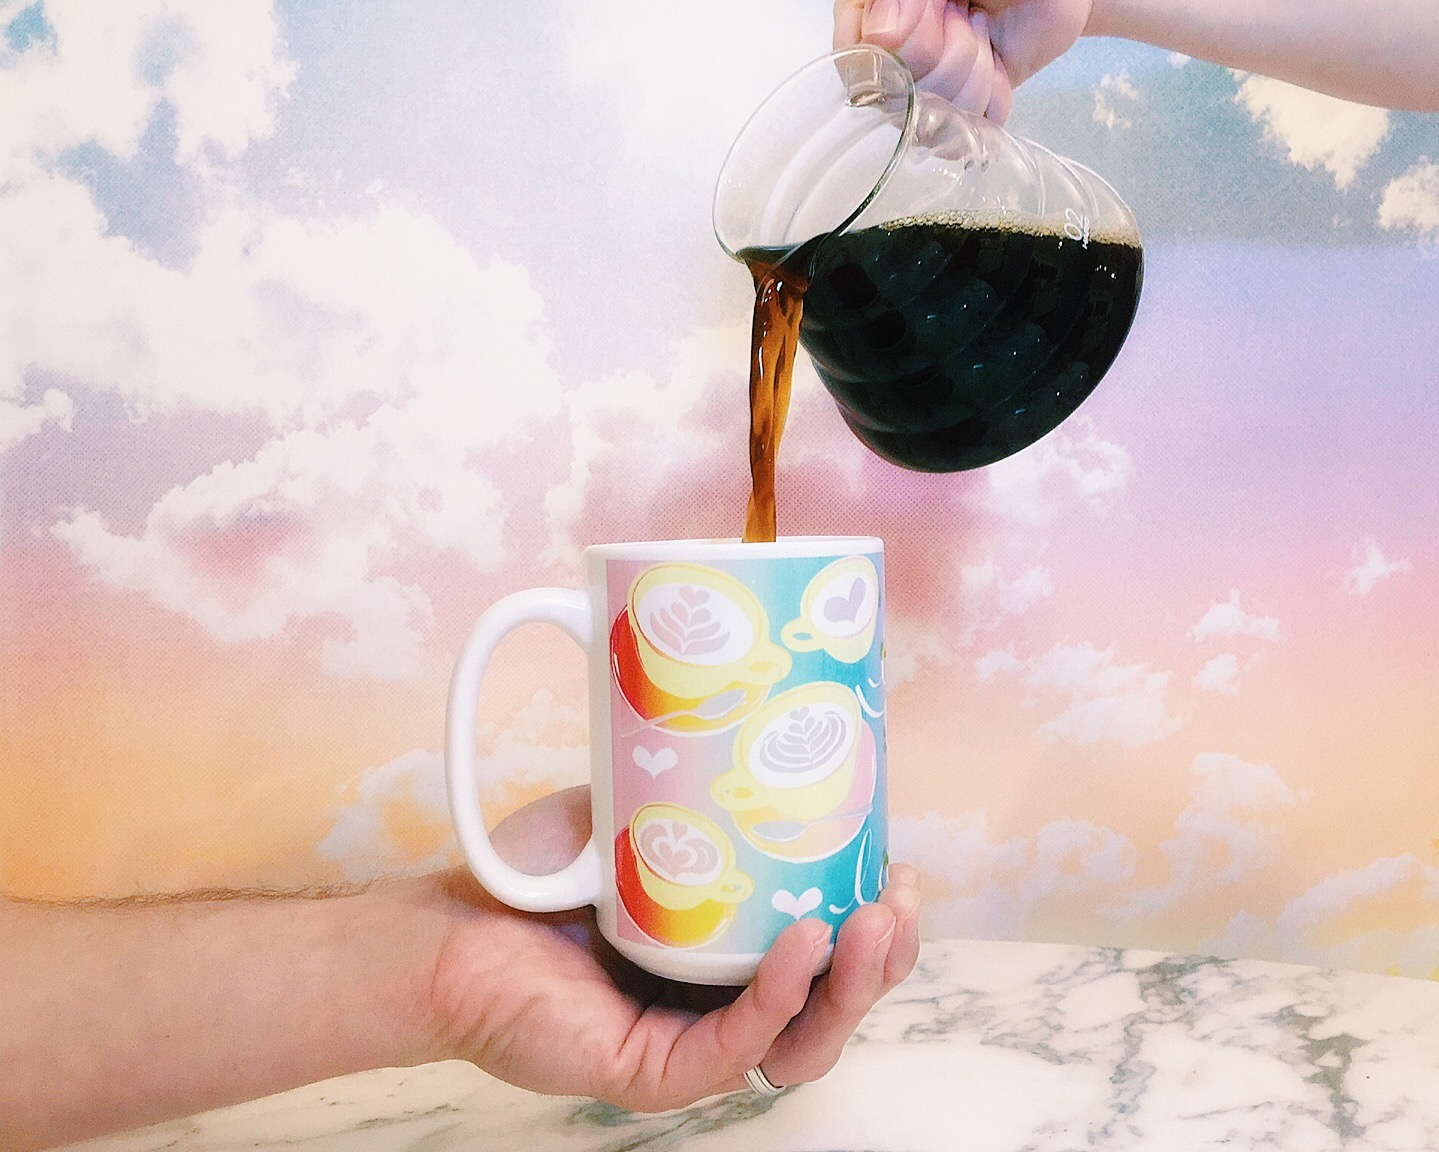 Photo & Mug Design by Chloe Beckerman Hardt of Dat Print Doe